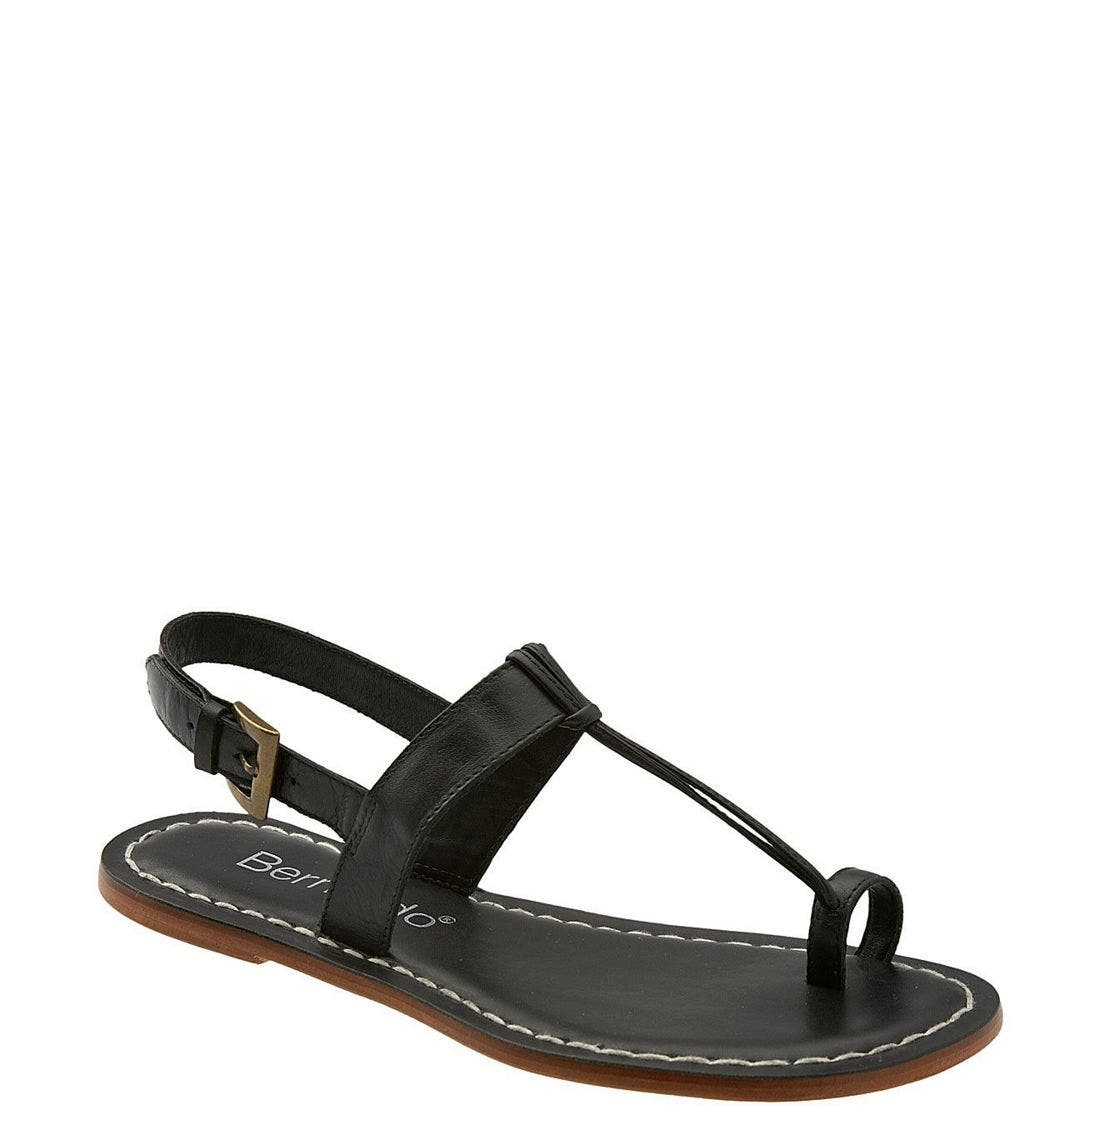 Alternate Image 1 Selected - Bernardo Maverick Leather Sandal (Women)